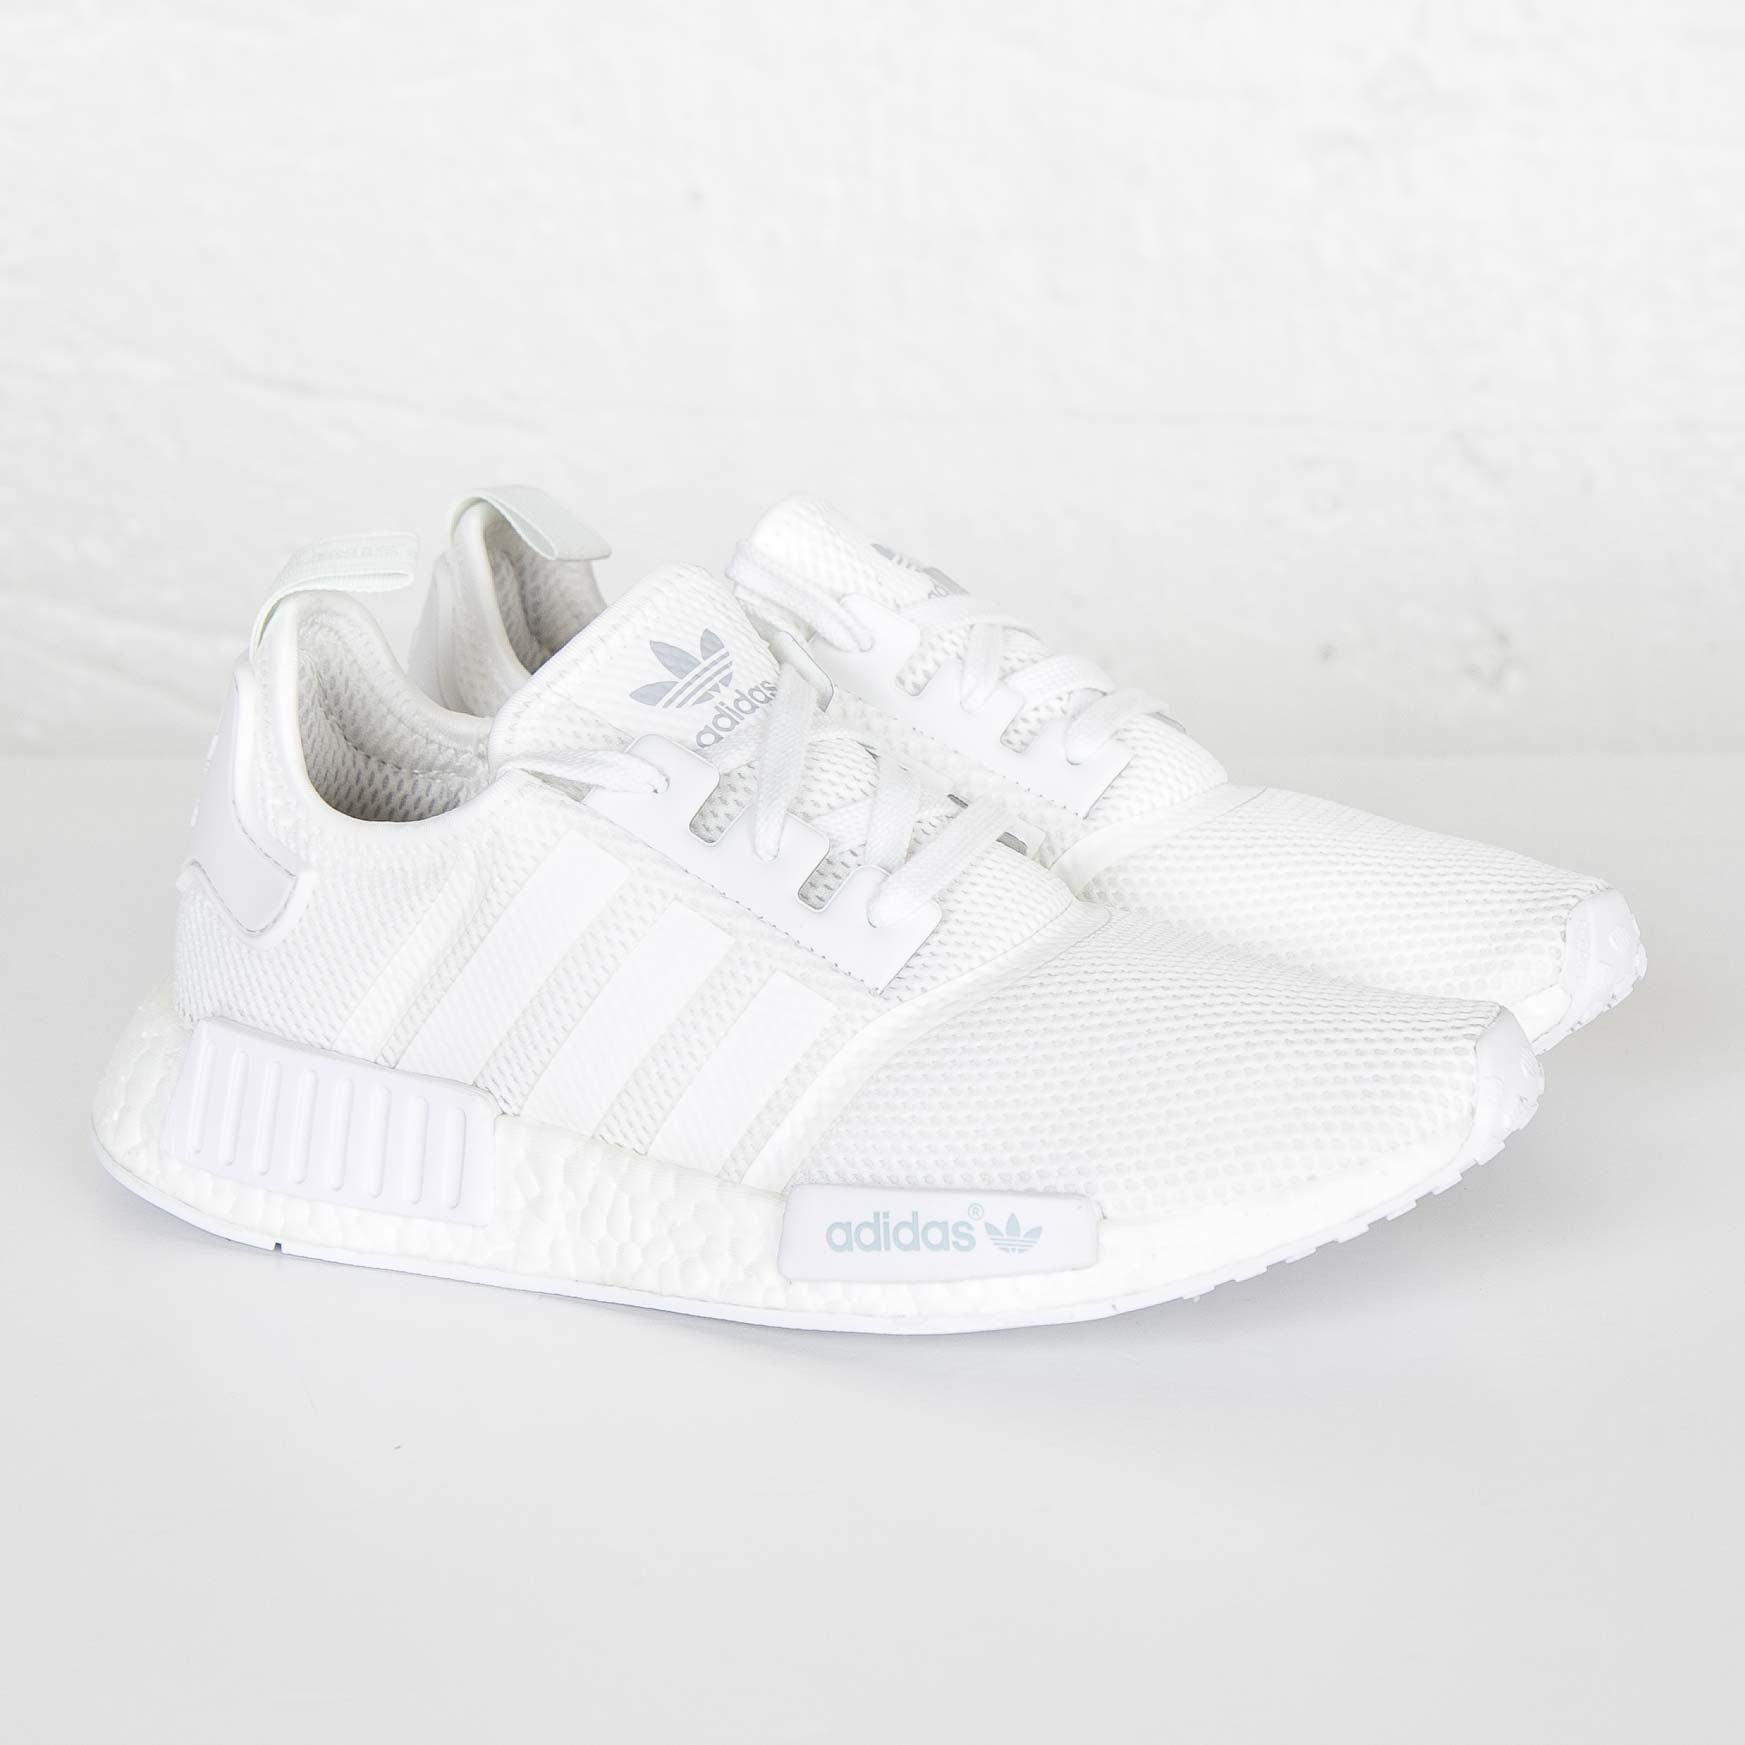 cheap for discount dcf04 0d984 adidas NMD_R1 - S79166 - Sneakersnstuff | sneakers ...